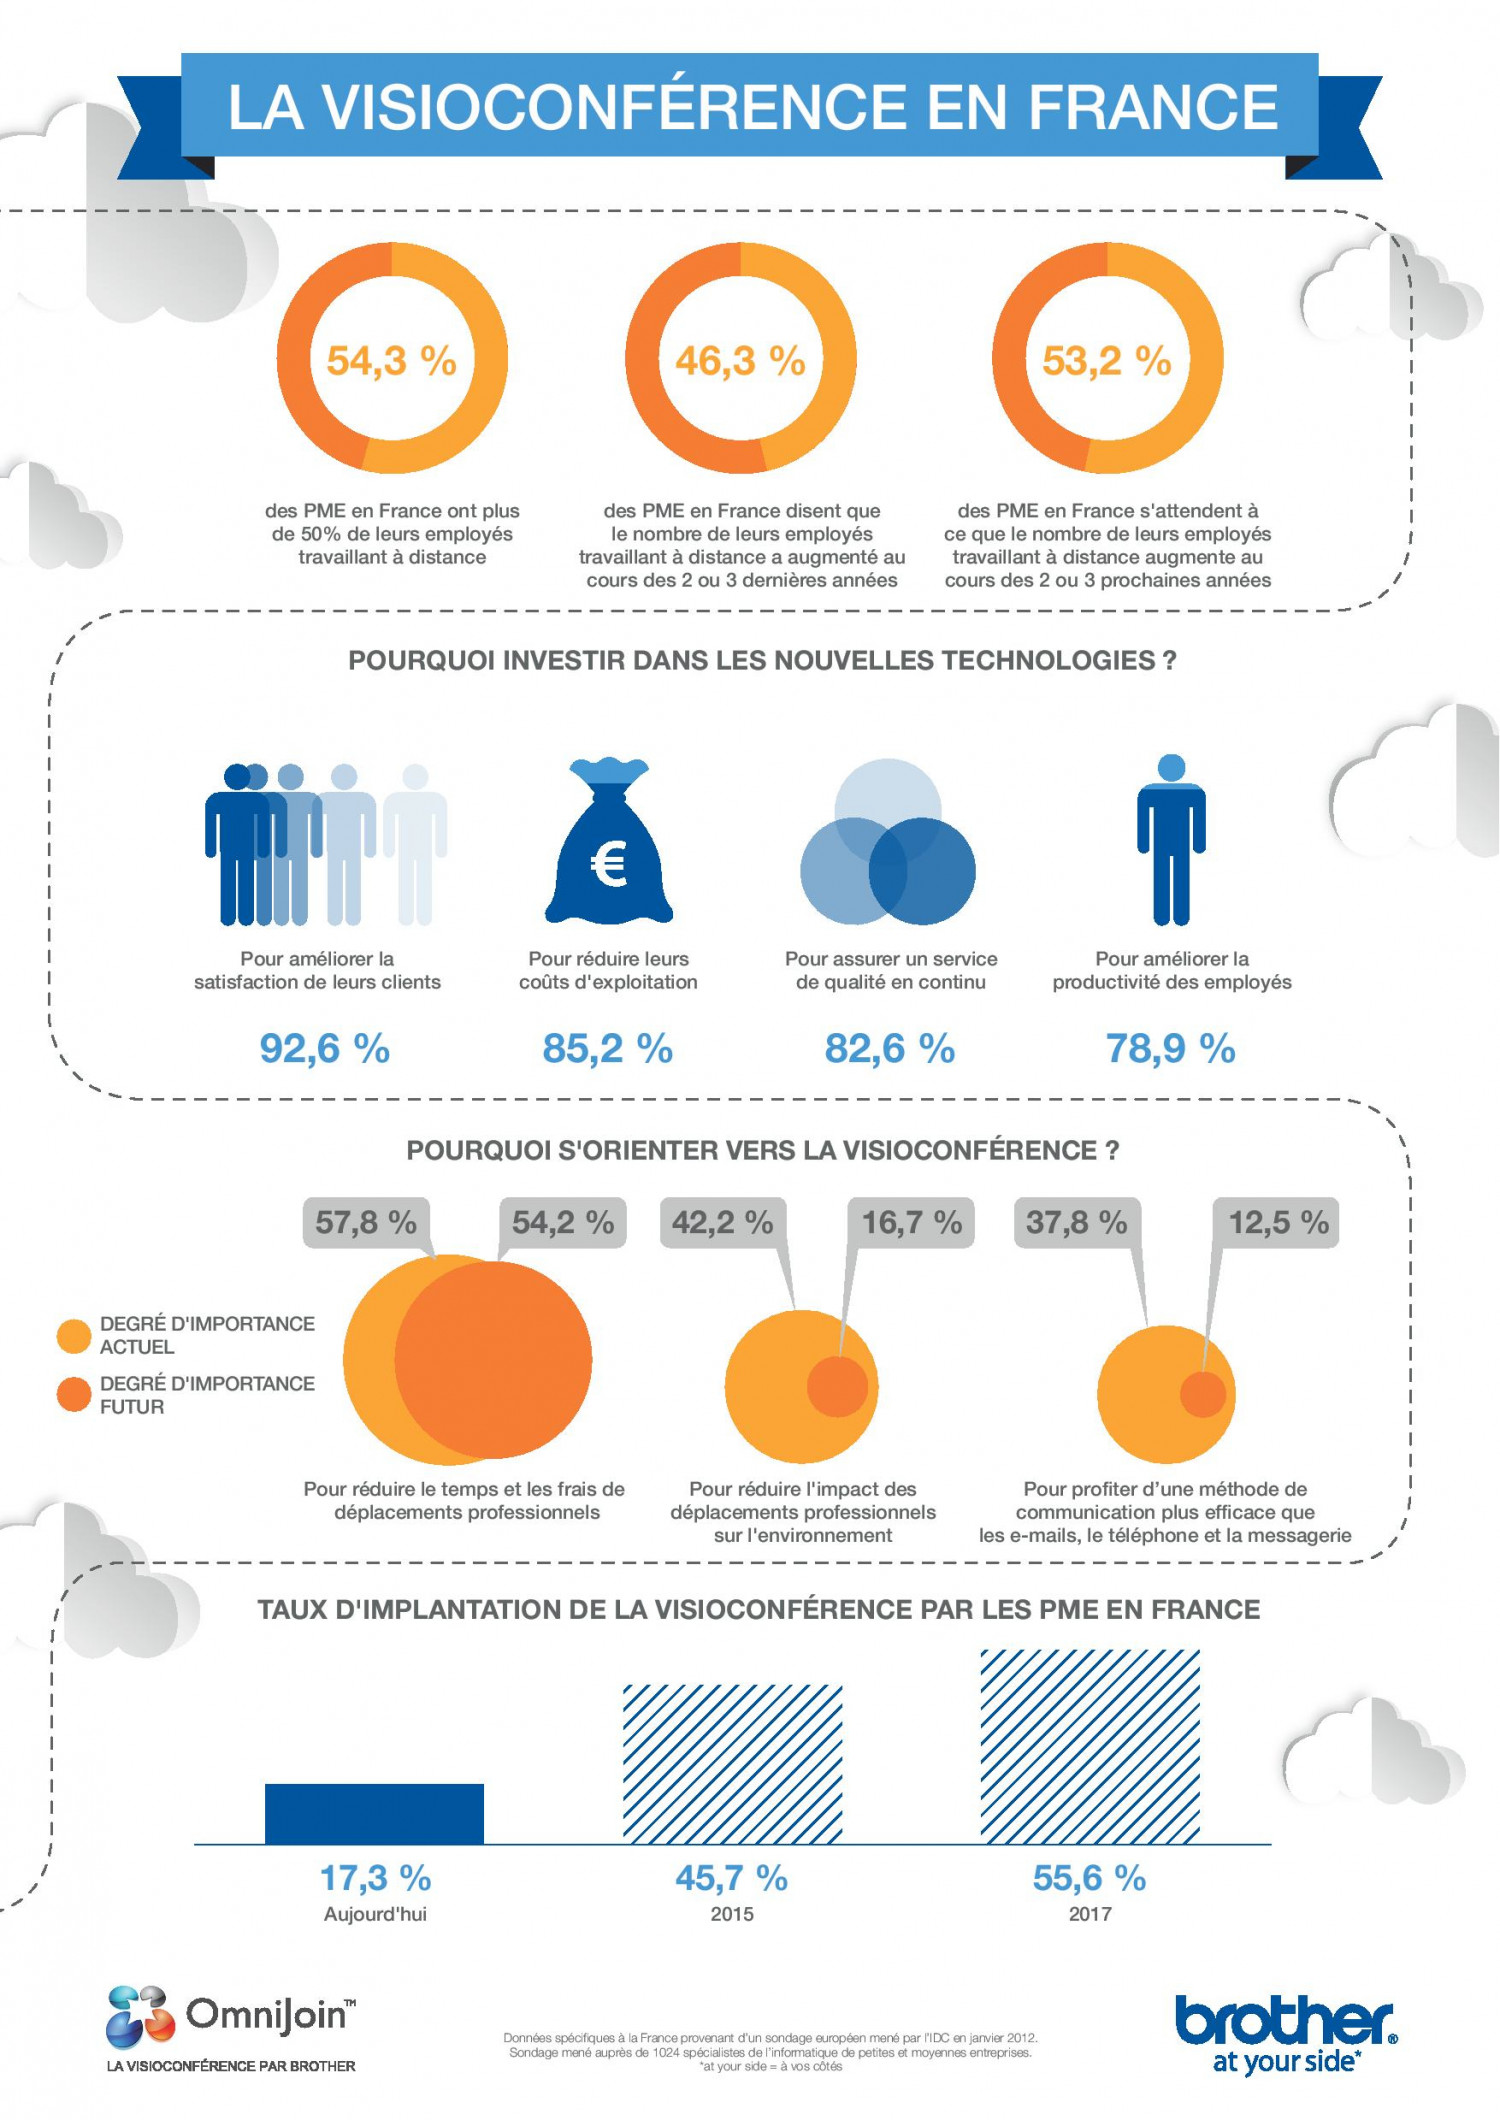 Web Conferencing in France Infographic